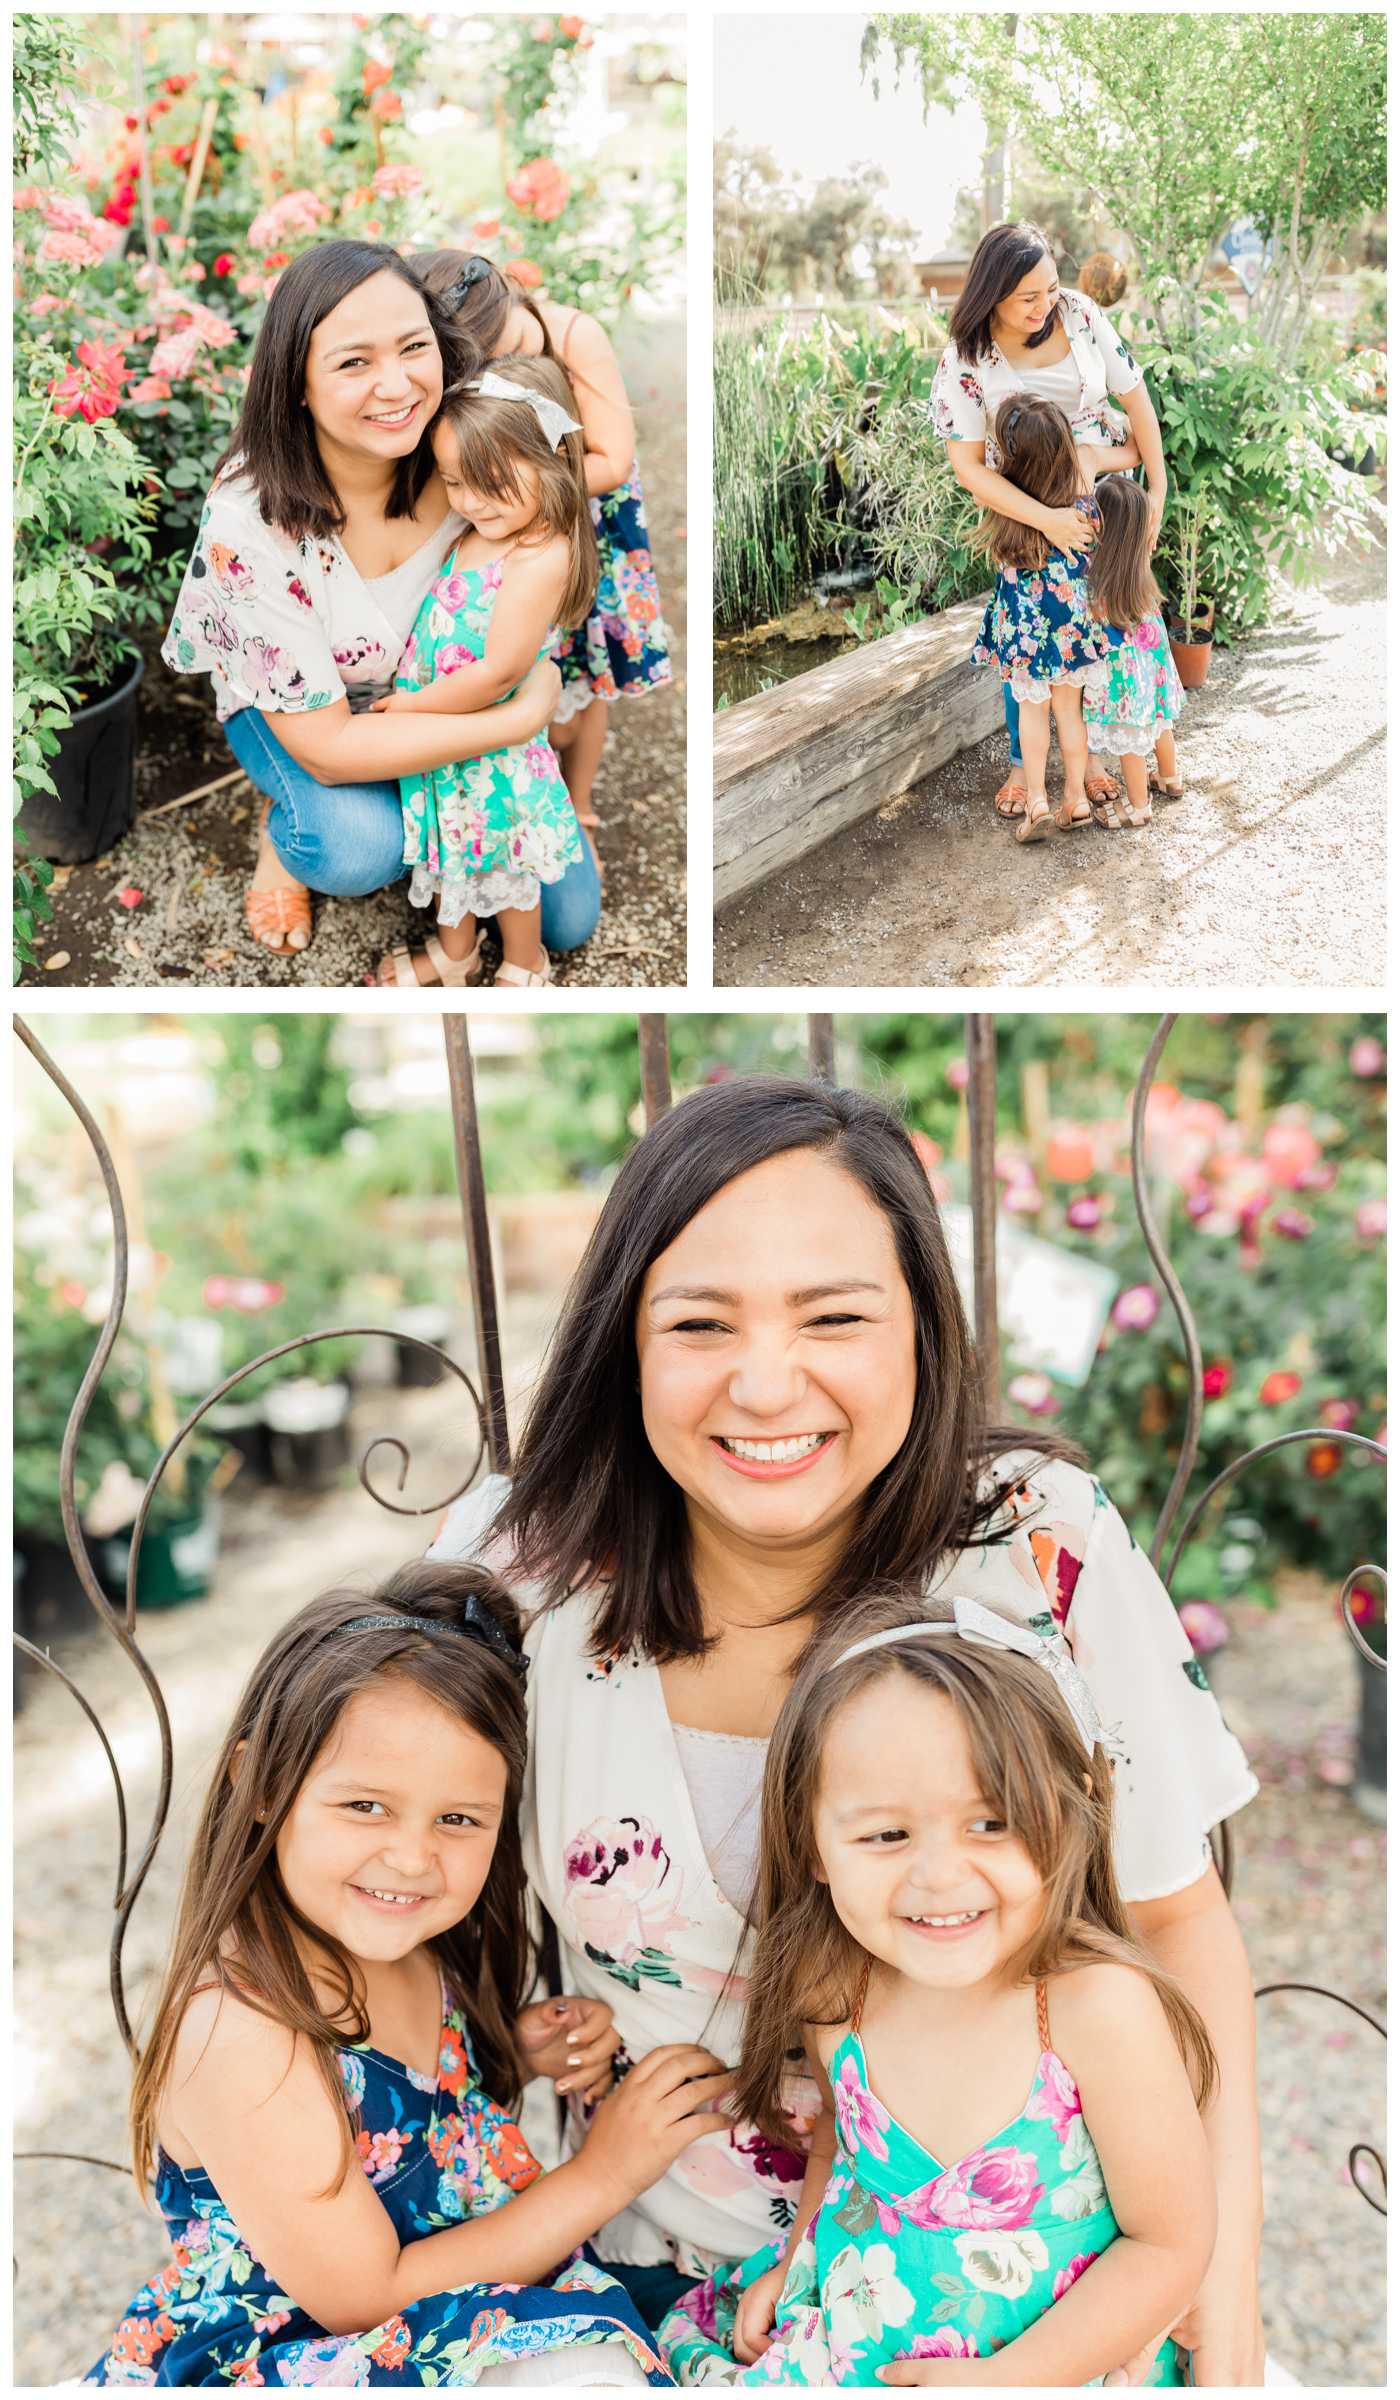 Collage of images of mother with two little girls